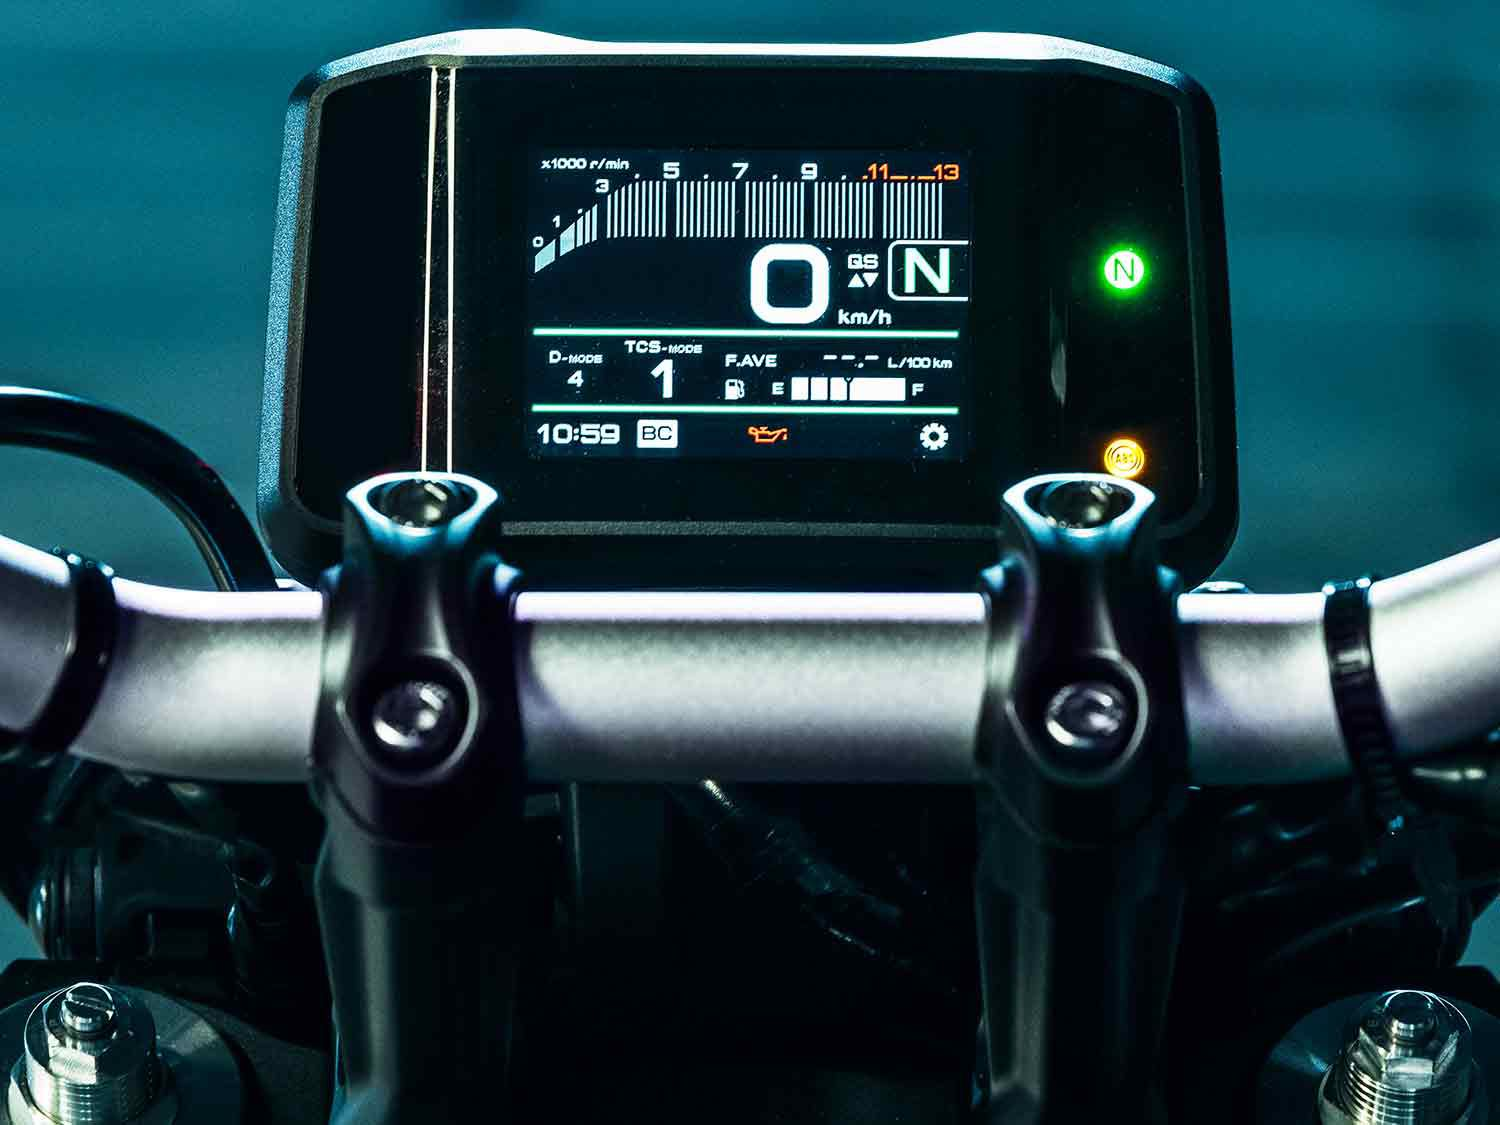 See all the ride info you need on the new 3.5-inch, full-color TFT instrument panel.